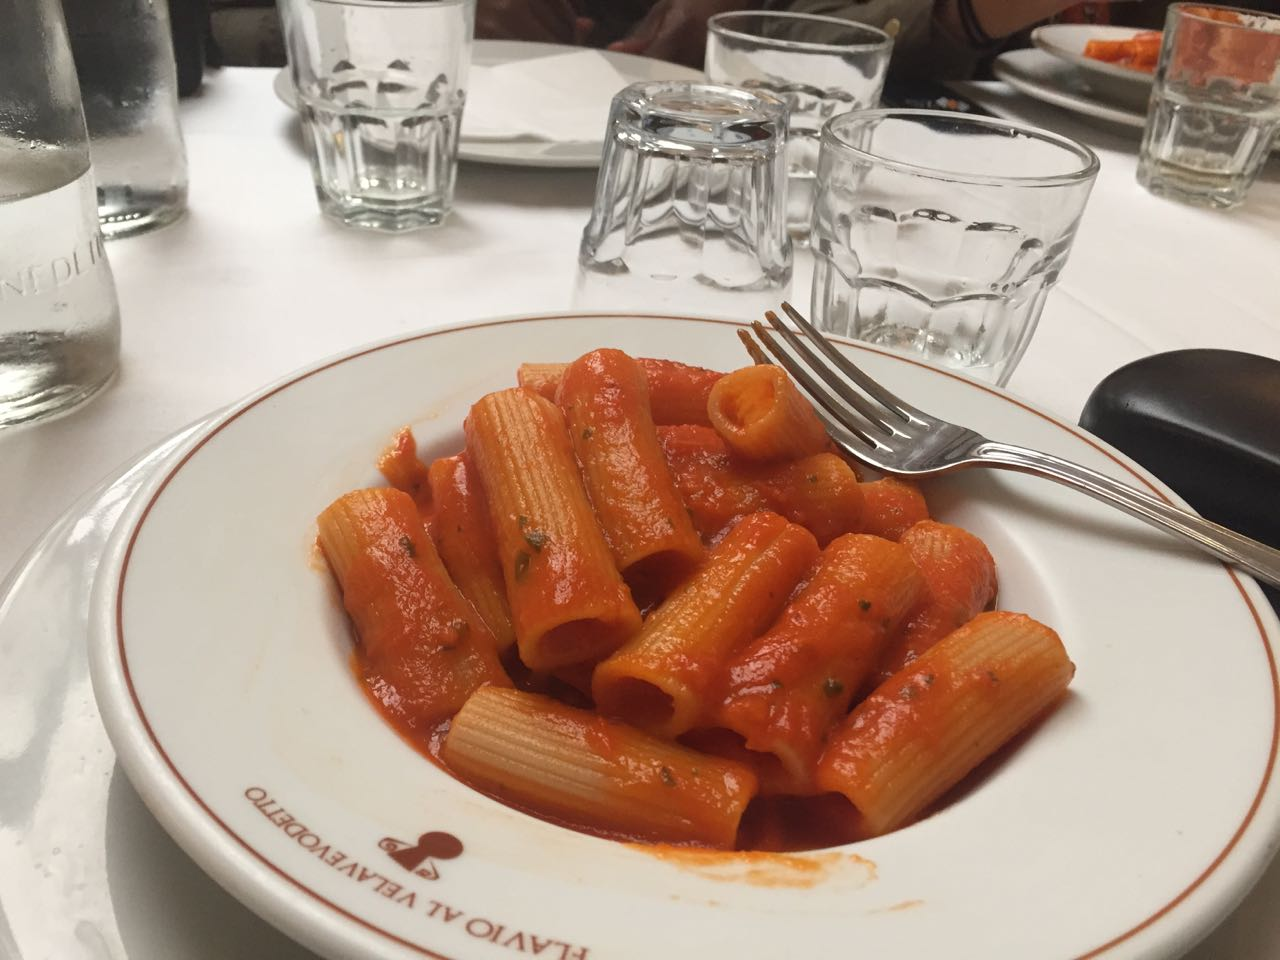 This is pasta at Flávio Al Velavevodetto, one of the most authentic Italian restaurants you will ever see in Rome. It is in a working class area and stays pack. A bit of advice, do not order the spaghetti with meatballs, the cook will leave the kitchen and eject you. Spaghetti and Meatballs is not done in Rome